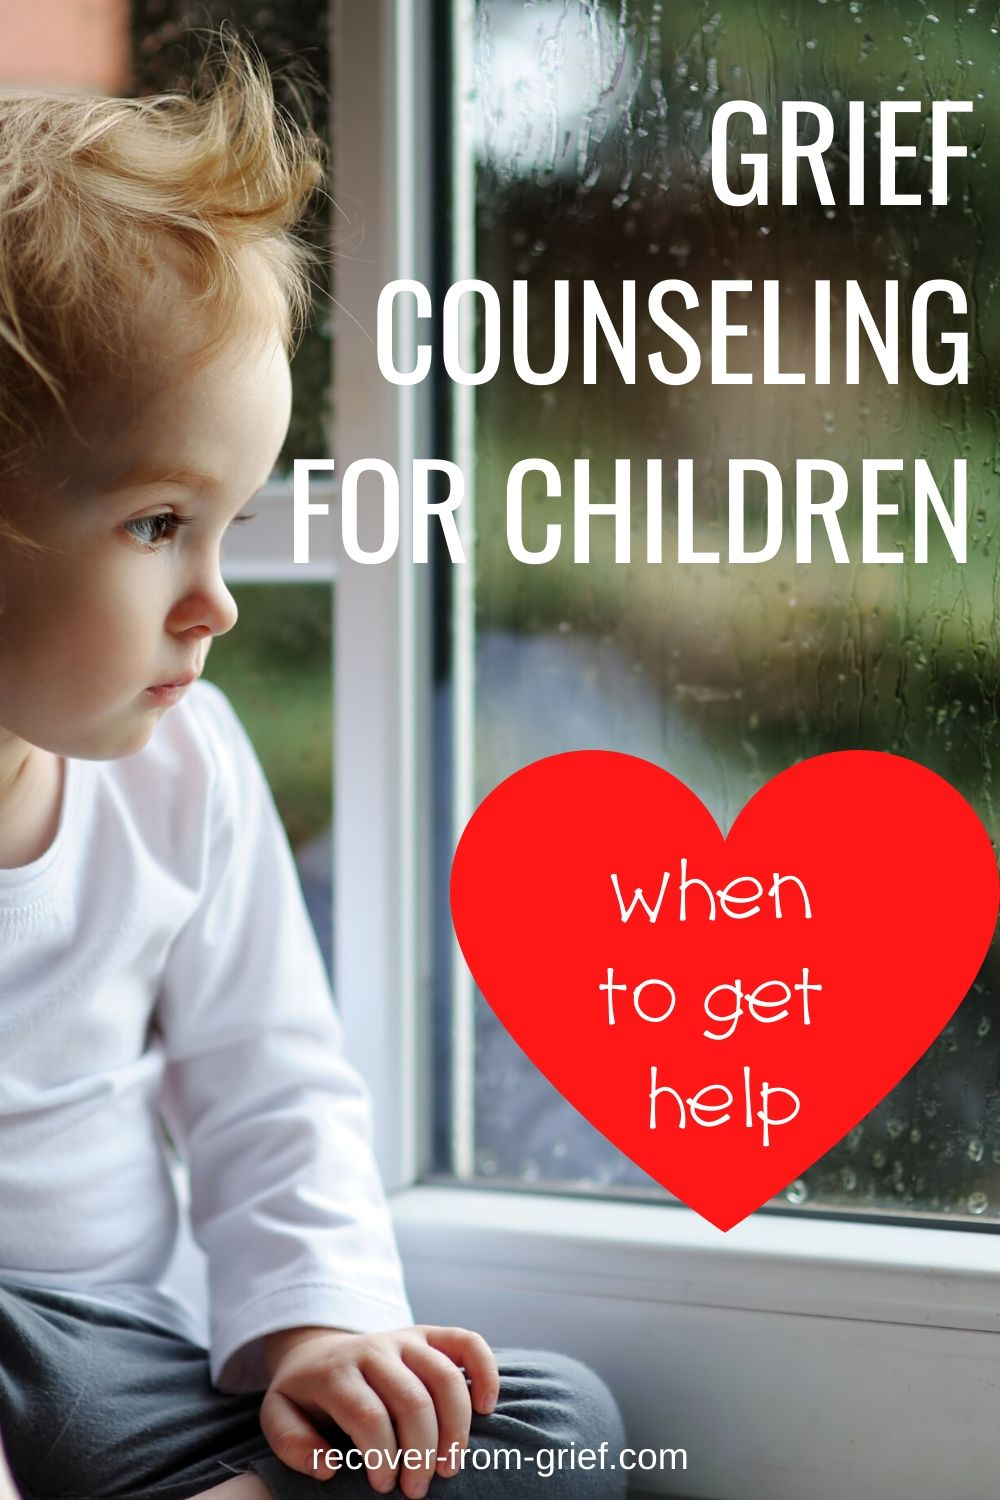 Grief counseling for children